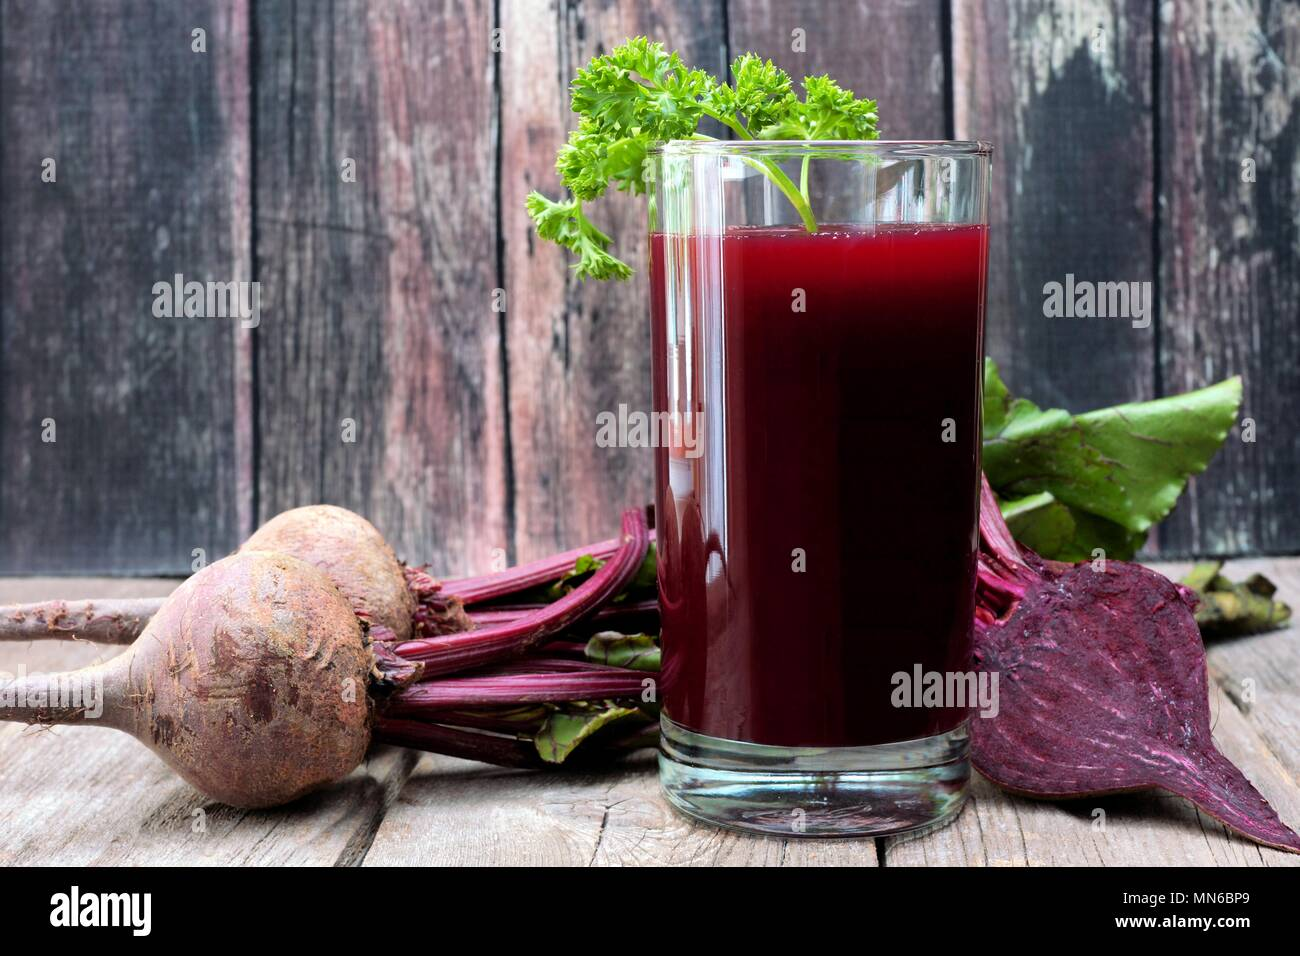 Beet juice in a glass against a rustic wooden background - Stock Image